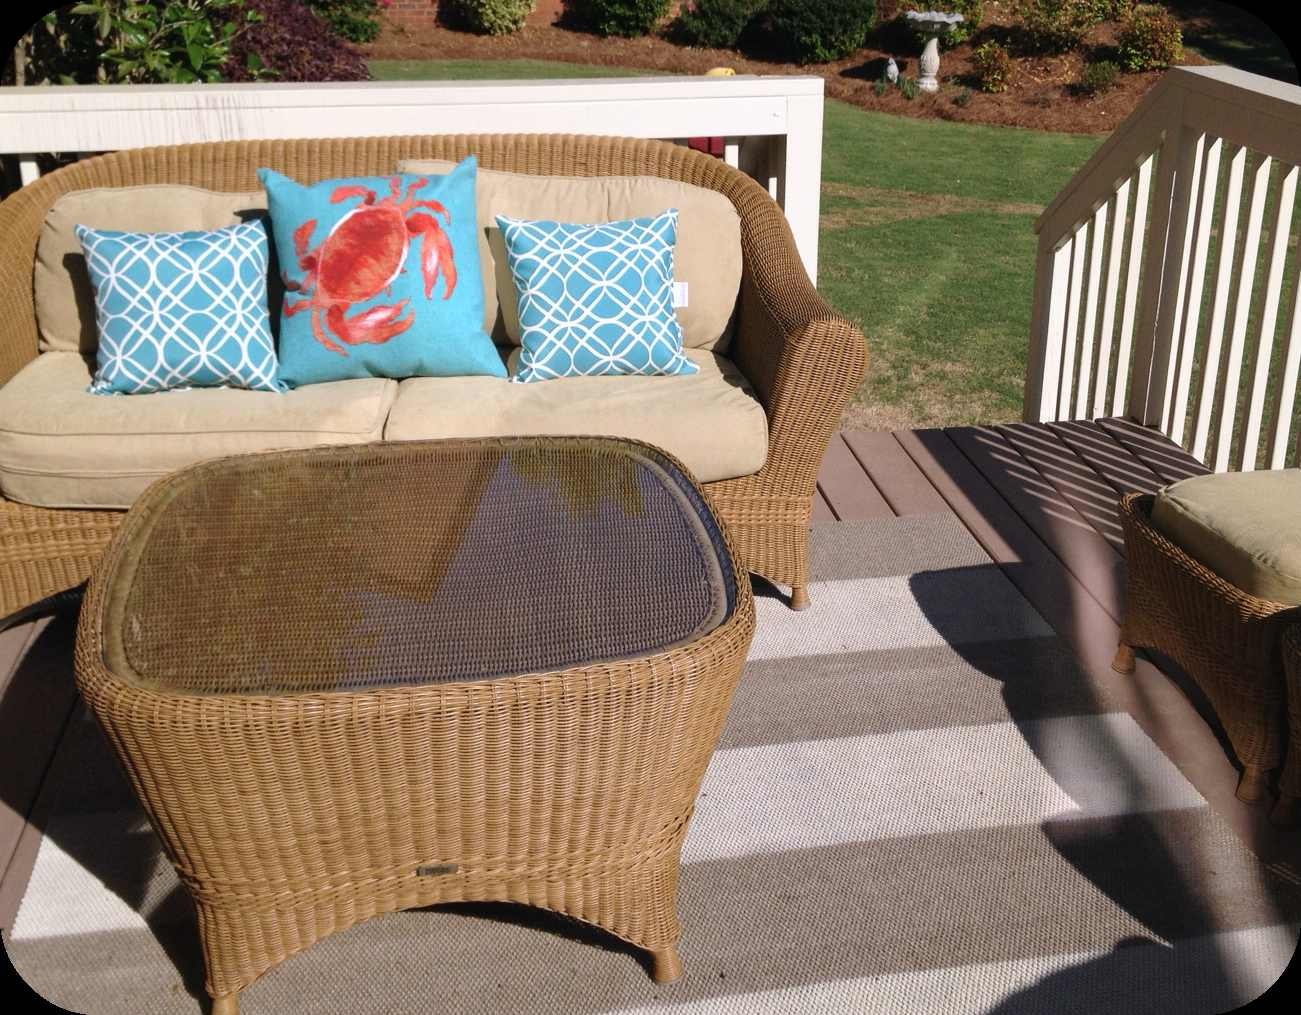 DIY Outdoor Rug on a Budget